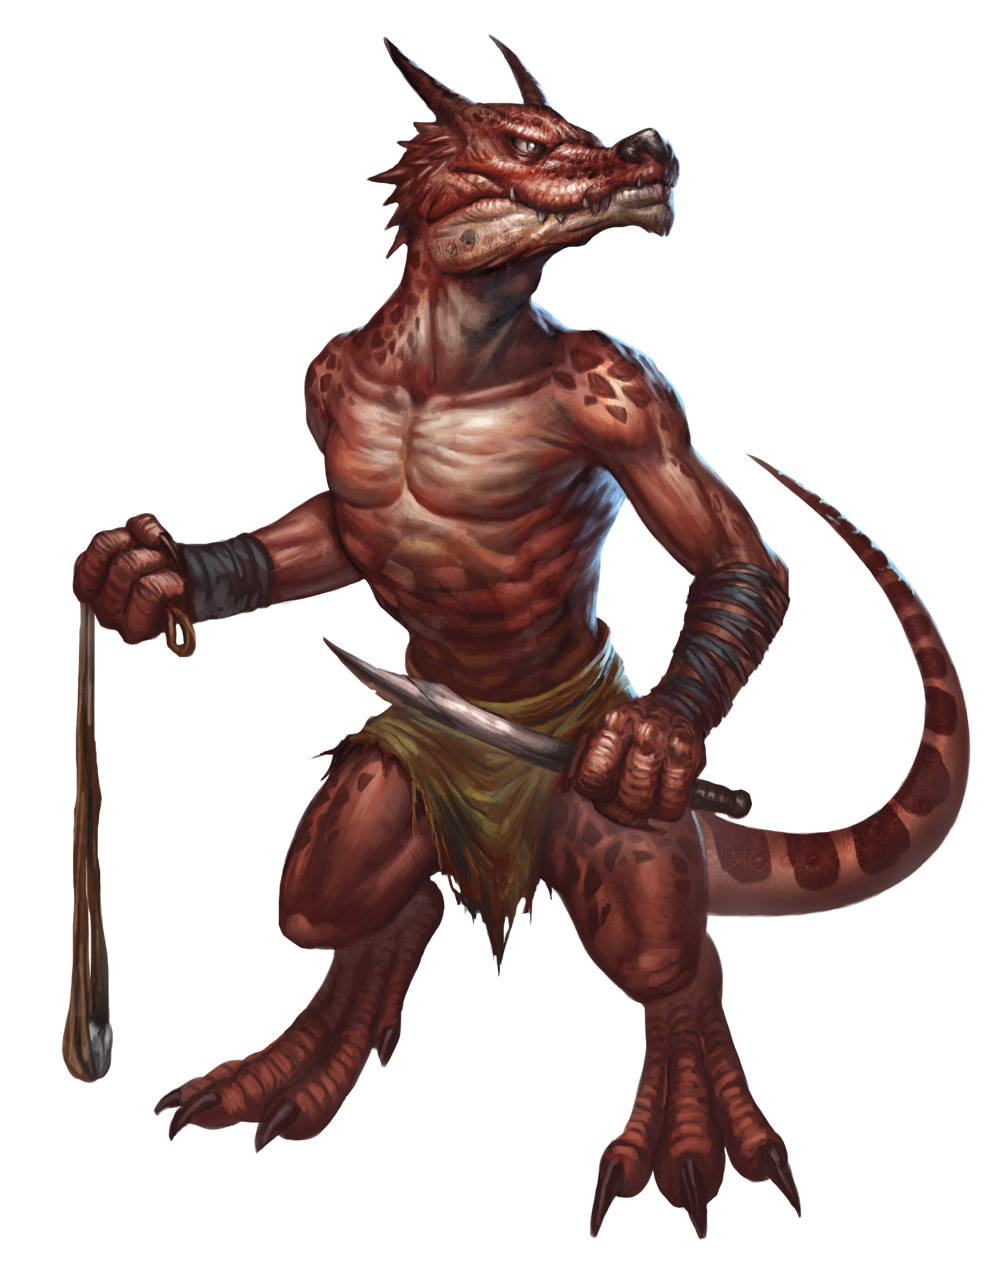 Monster_Manual_5e_-_Kobold_-_p195.jpg